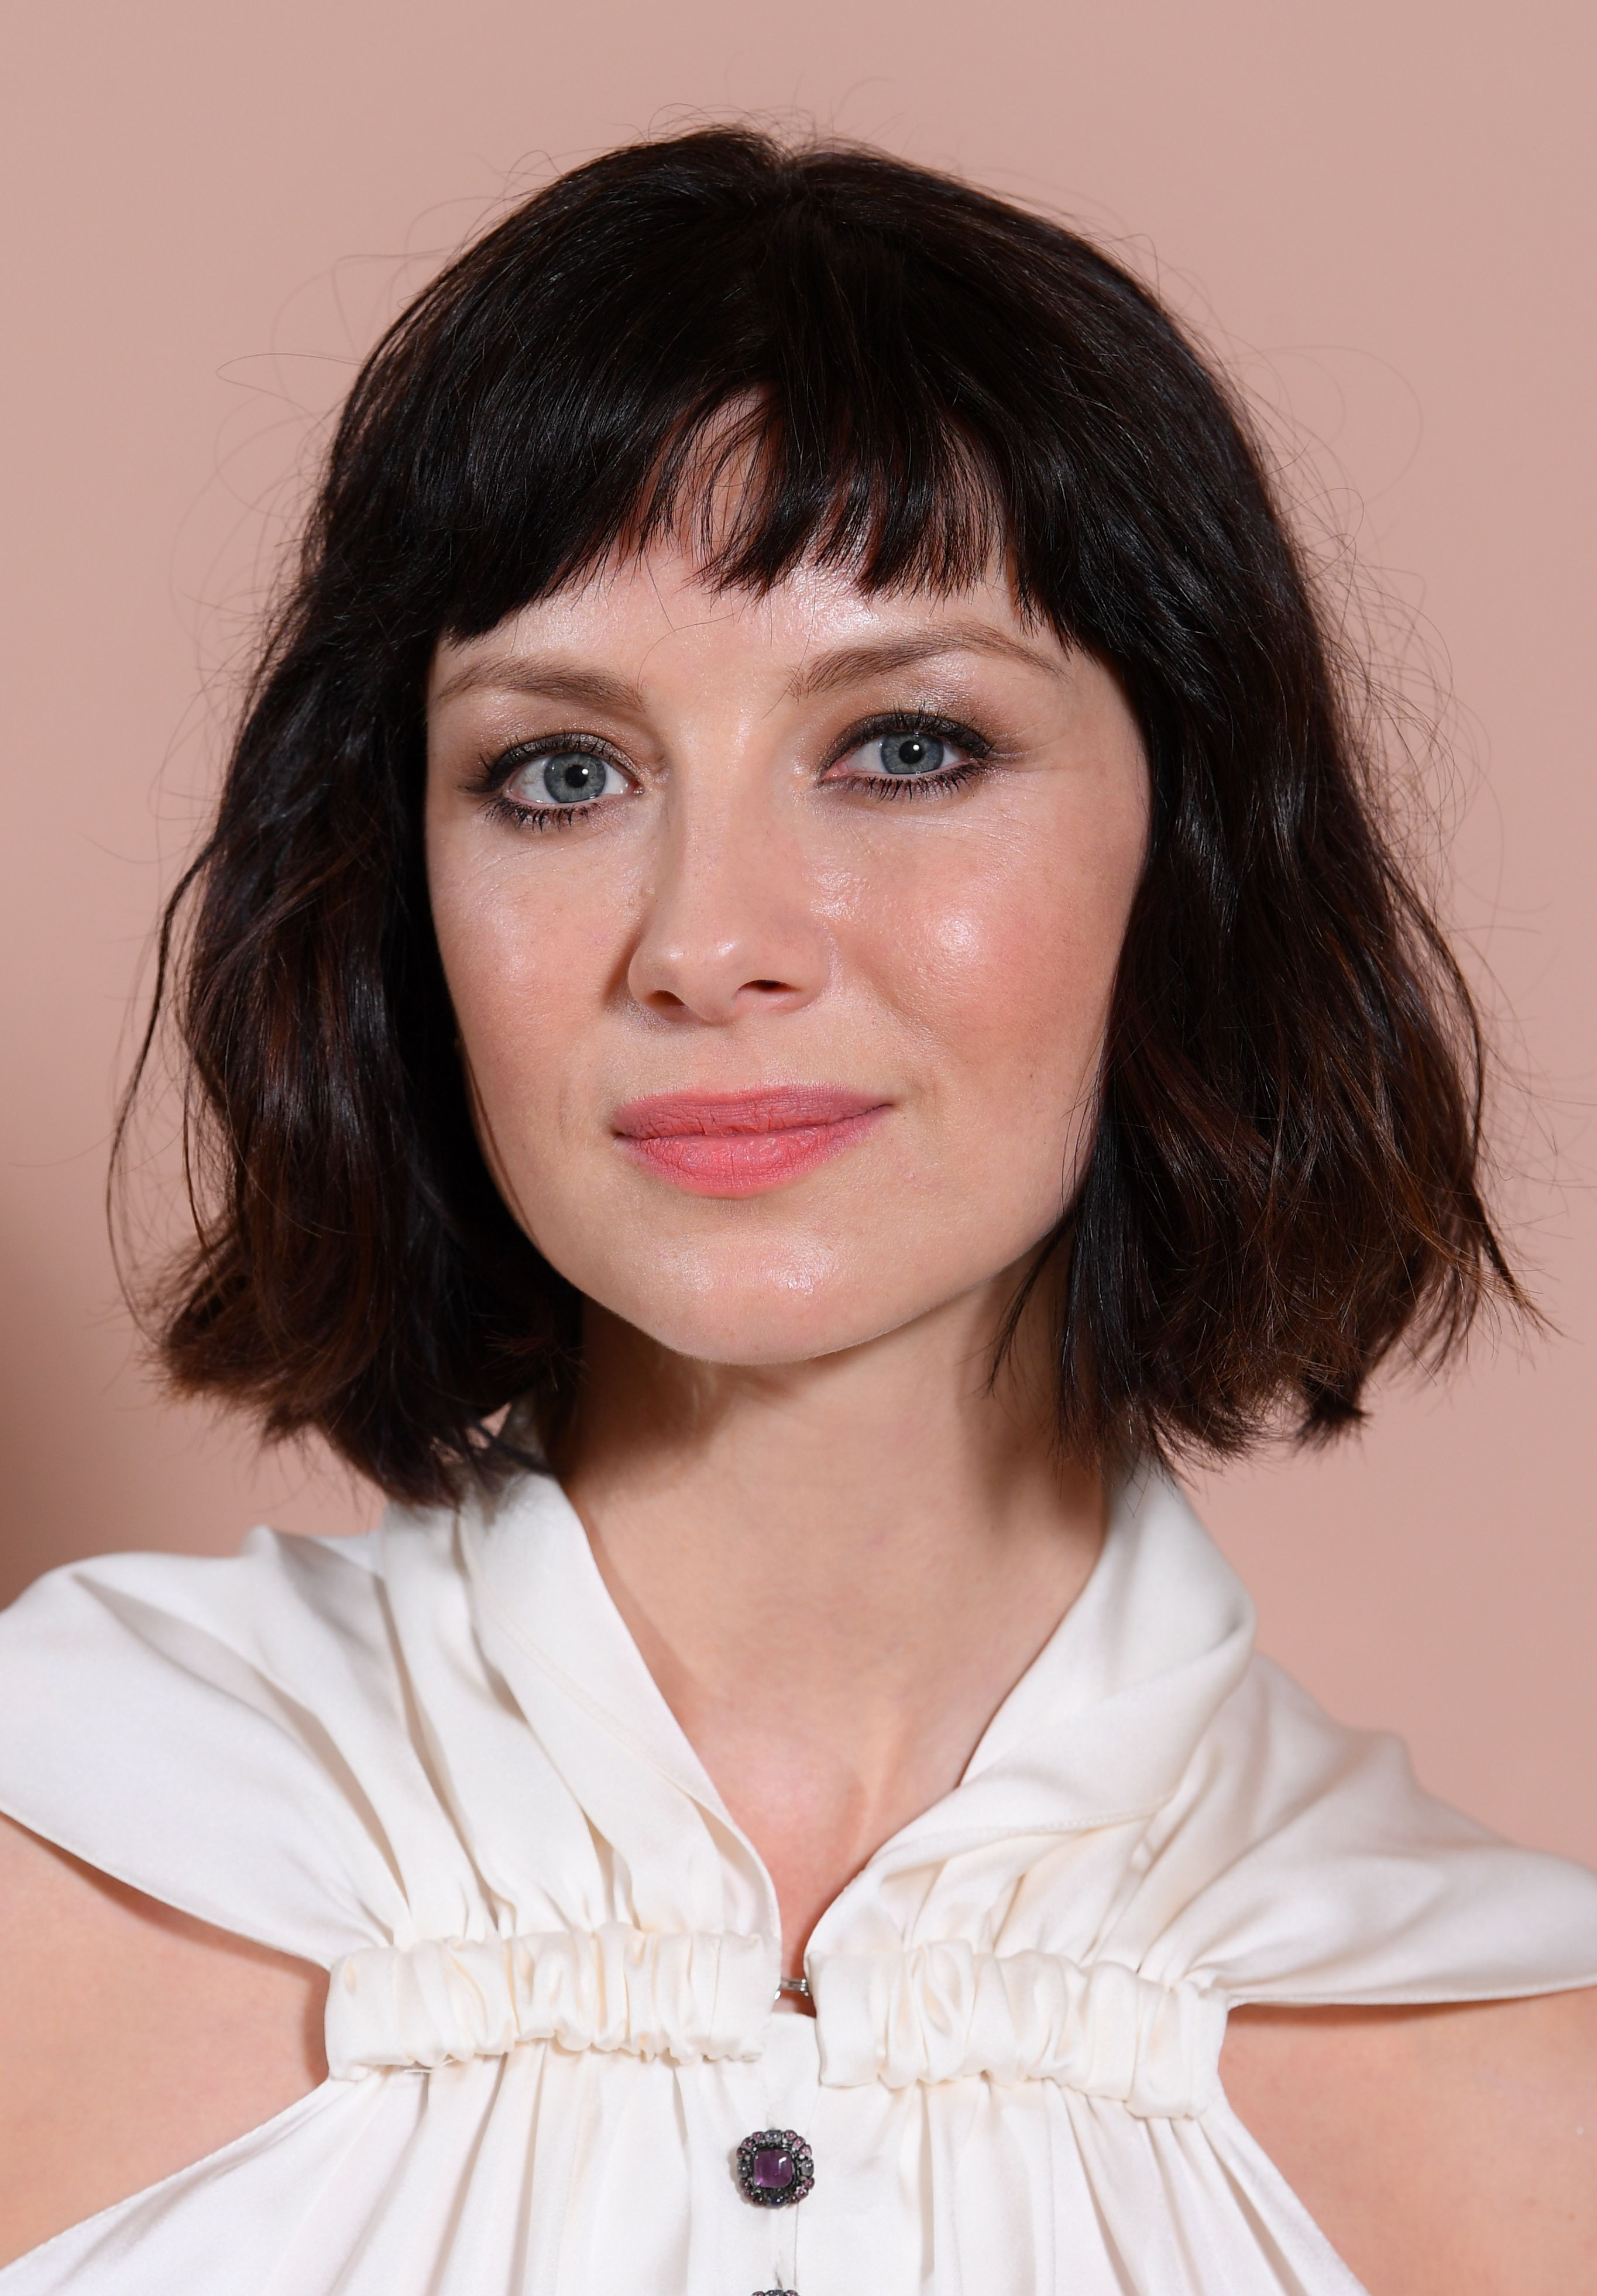 Meet Press Interview >> NEW HQ Pics of Caitriona Balfe at the BAFTA Nominees Party 2018 | Outlander Online